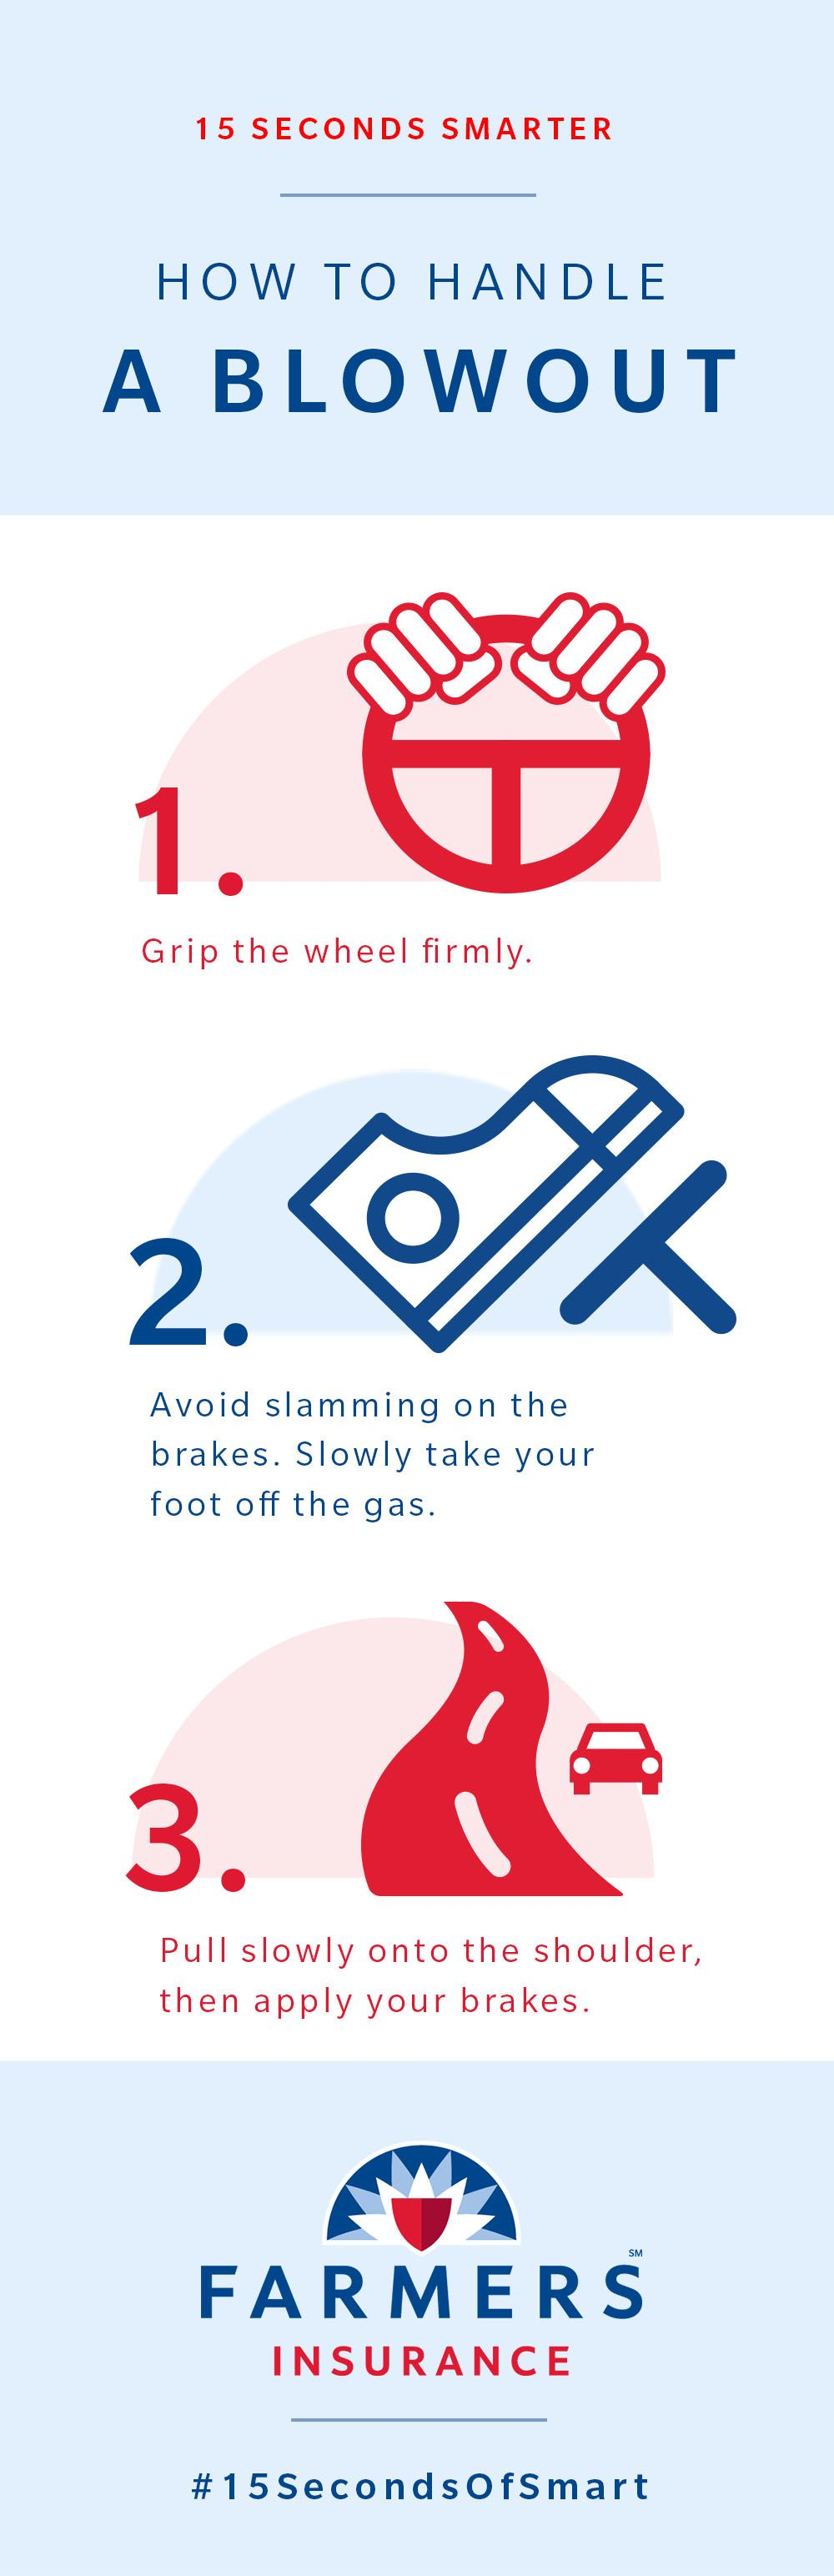 Safety Tip From Farmers Insurance How to Handle a